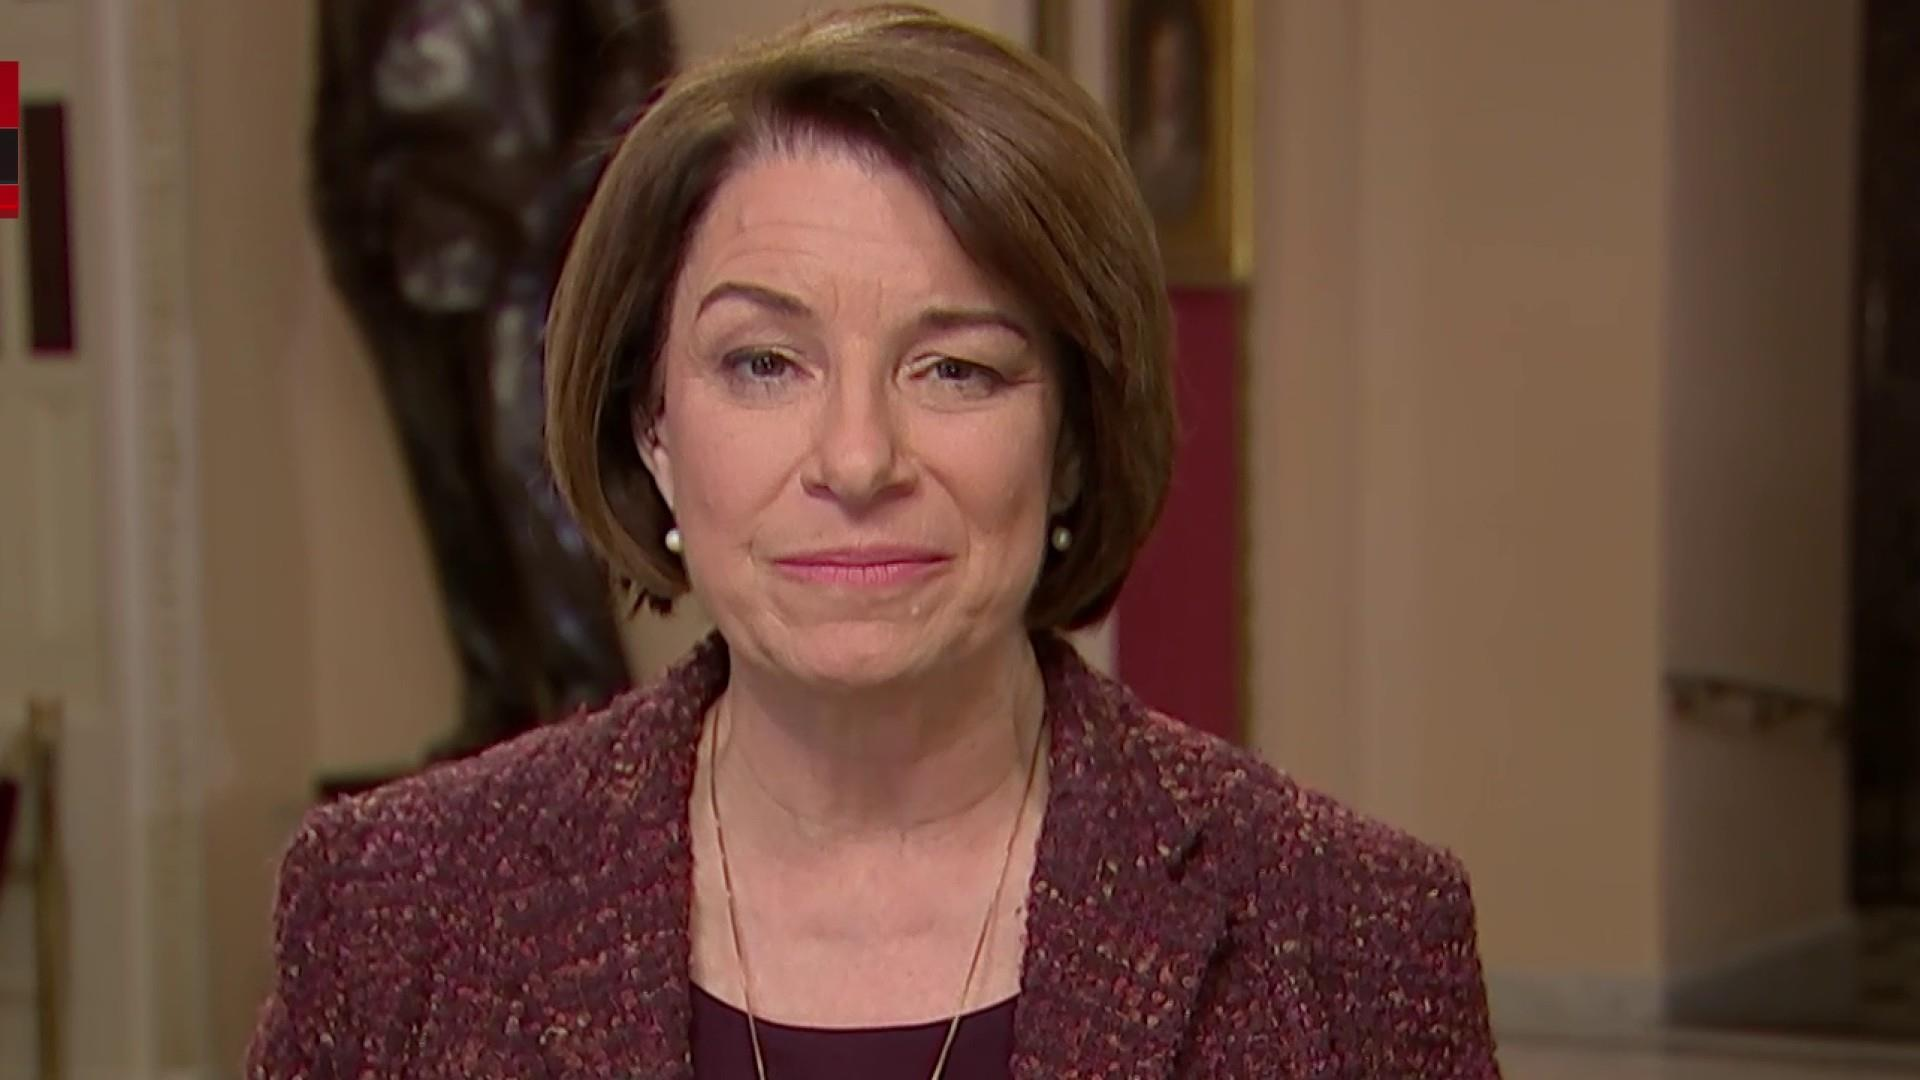 Sen. Klobuchar says Republicans should remember they serve the people, not the president